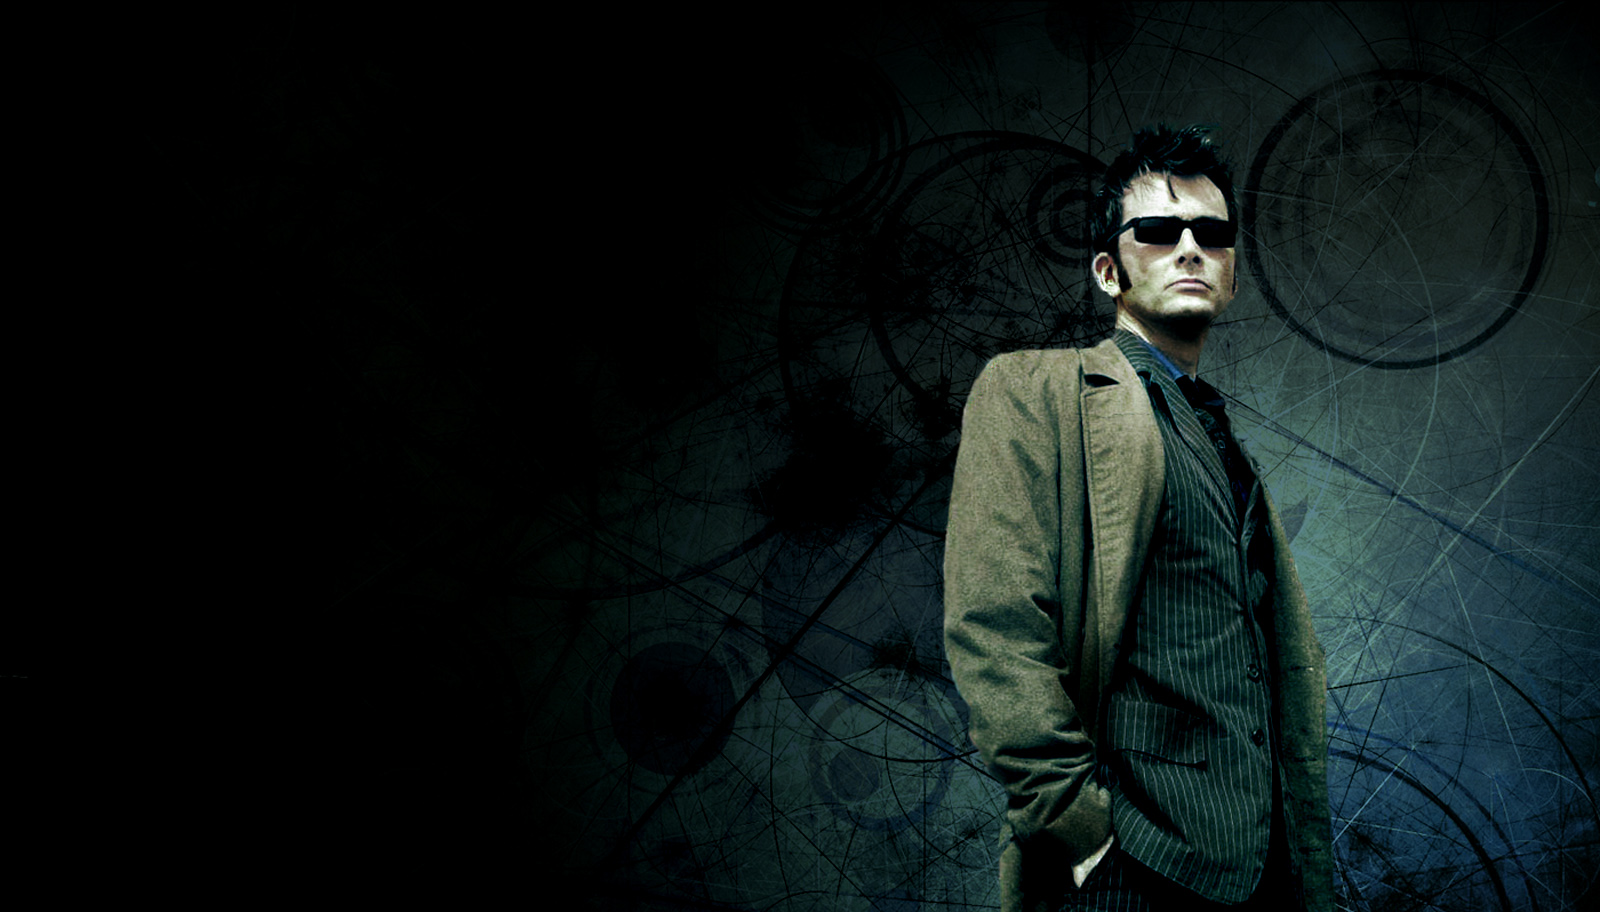 David Tennant Doctor Who HD Photo Wallpapers Download Wallpapers 1600x912